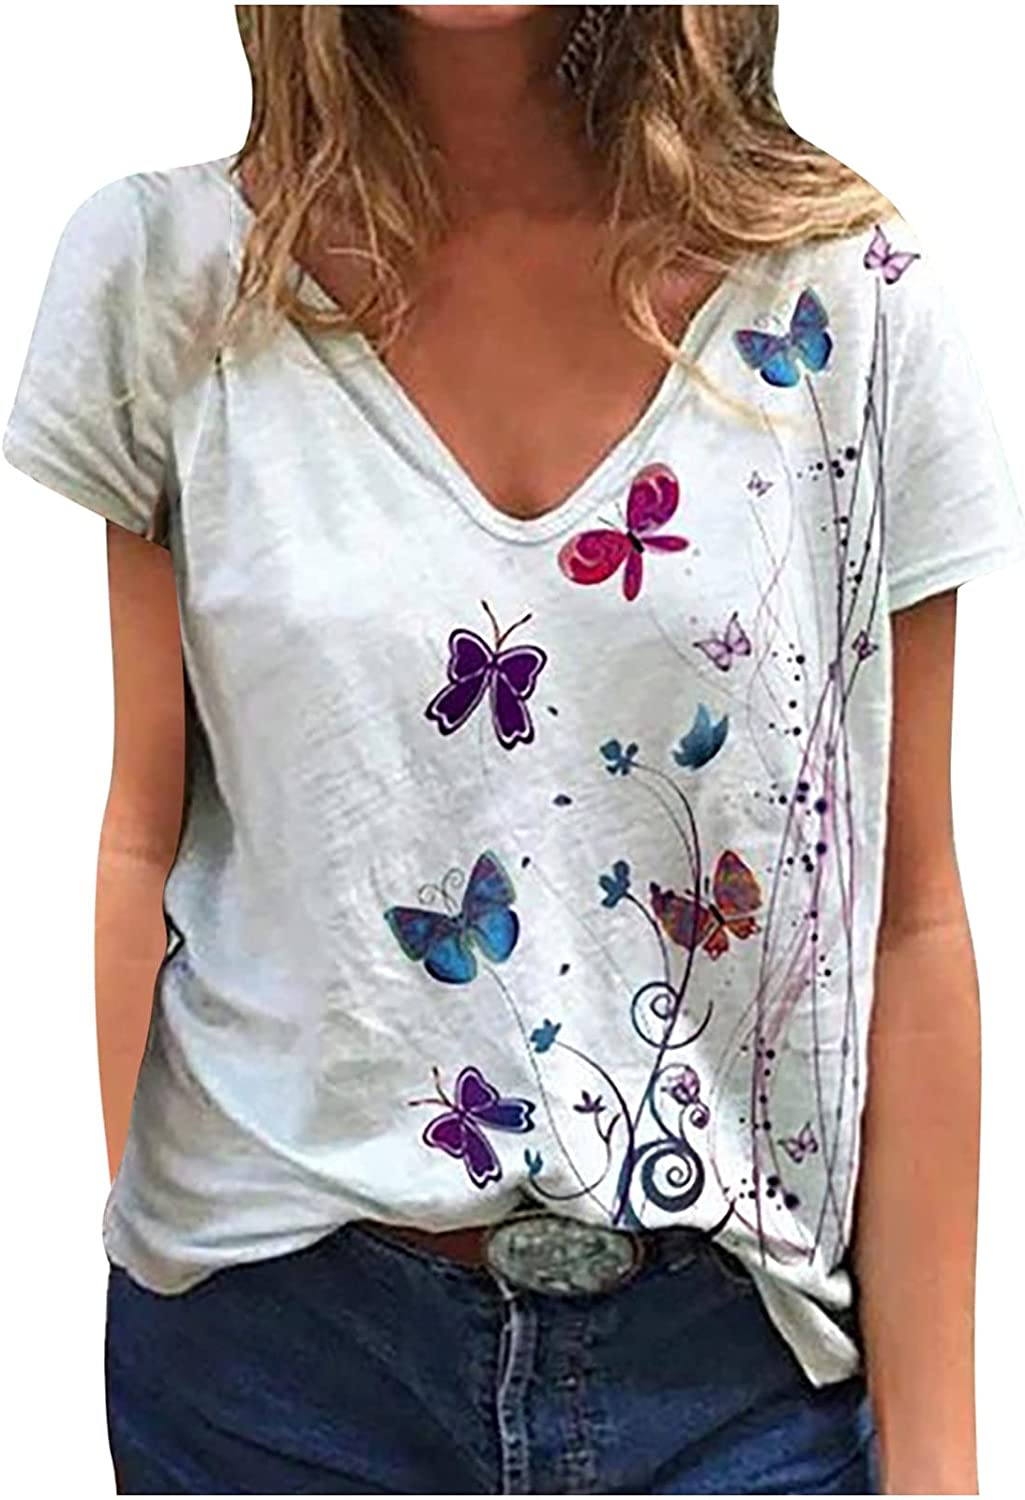 Fashion T-Shirt for Womens Summer V-Neck Short Sleeve Butterfly Printed Loose Tee Shirt Blouse Tops